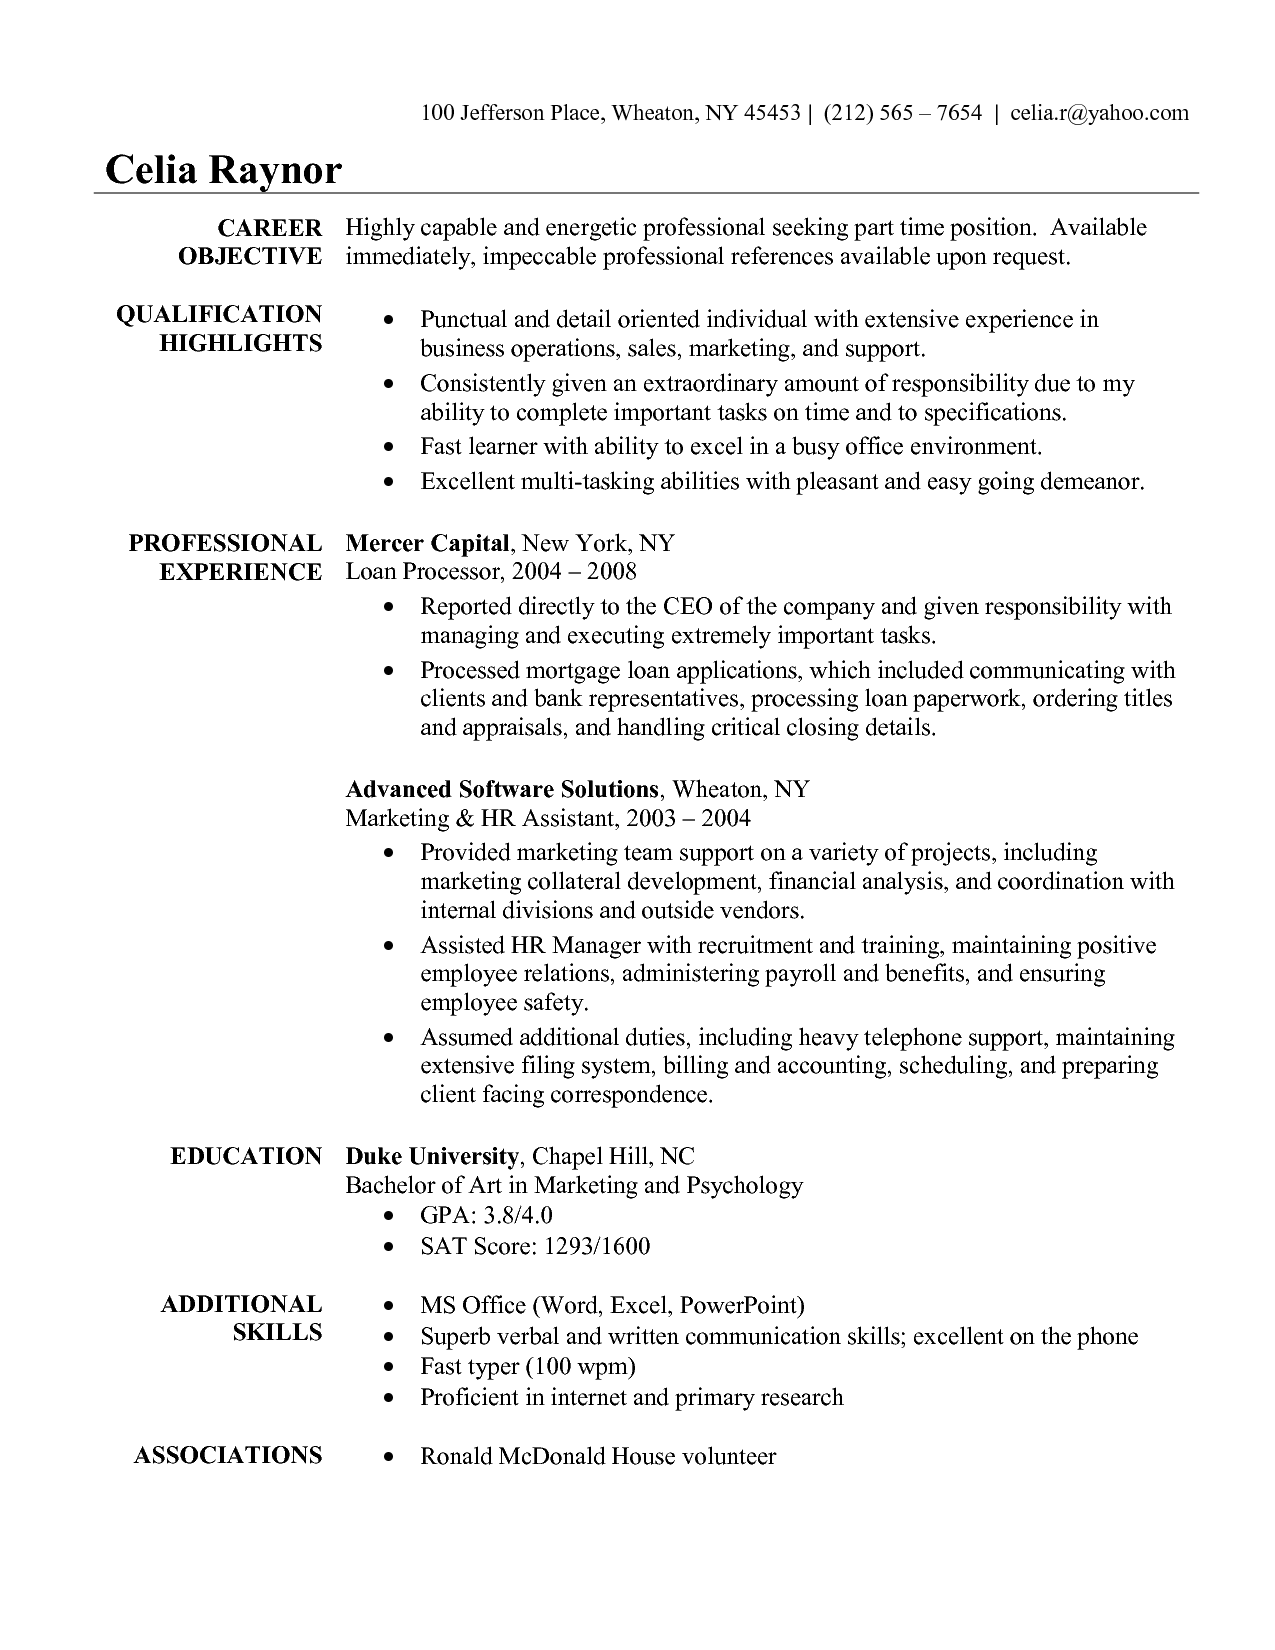 Administrative Assistant Resume Objective Examples Resume Sample For Administrative Assistant Resume Samples For